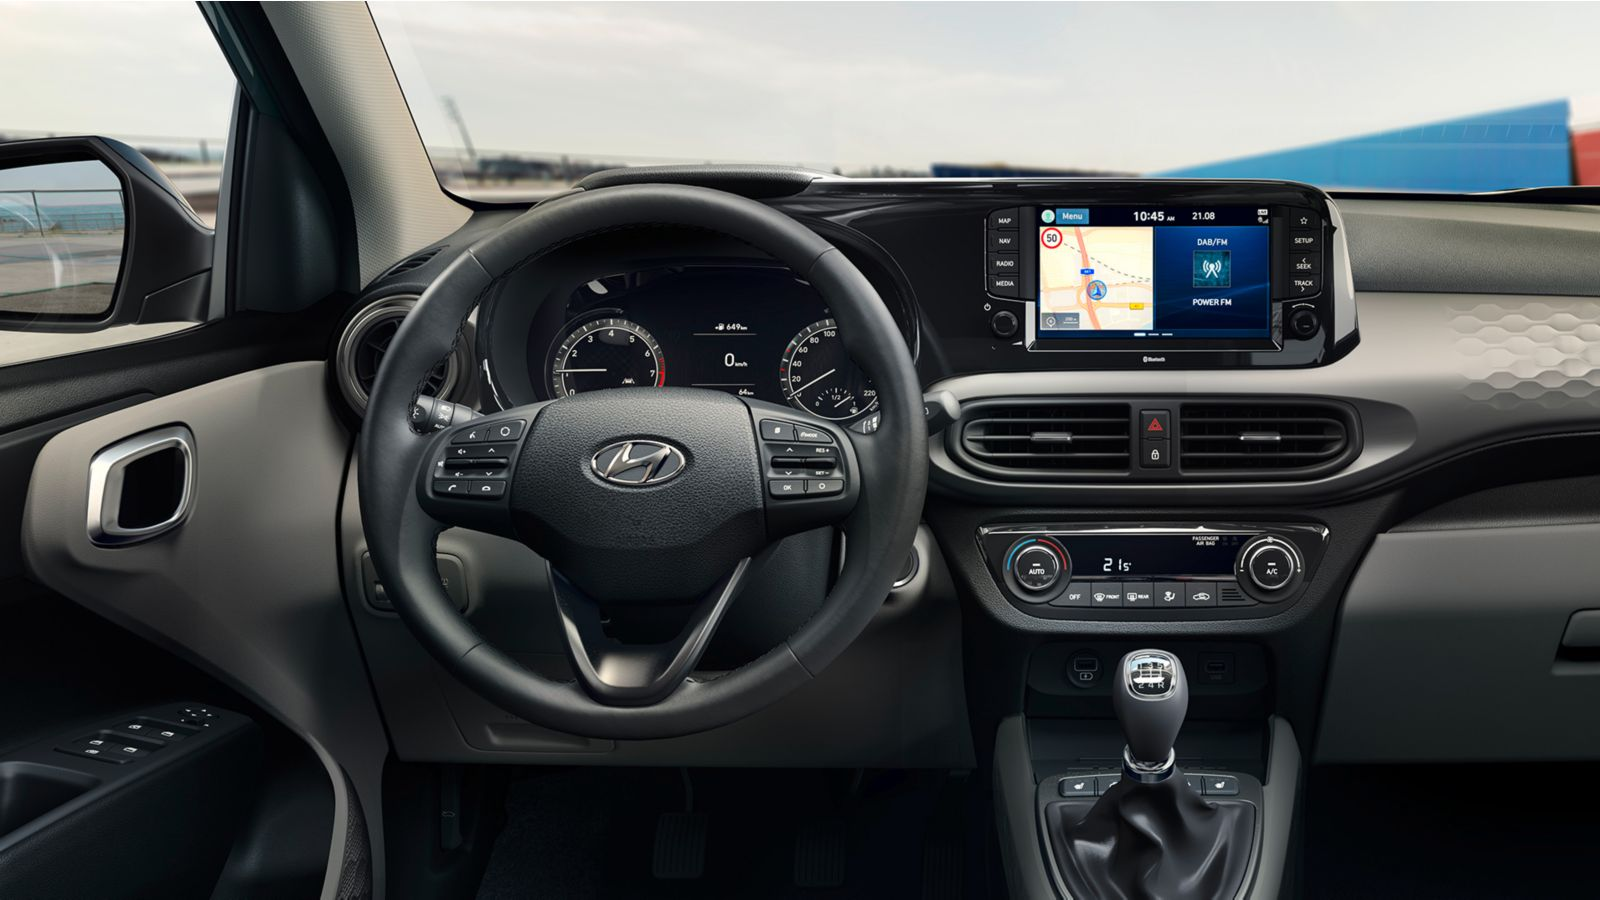 Close up image of the heated steering wheel in the Hyundai i10.